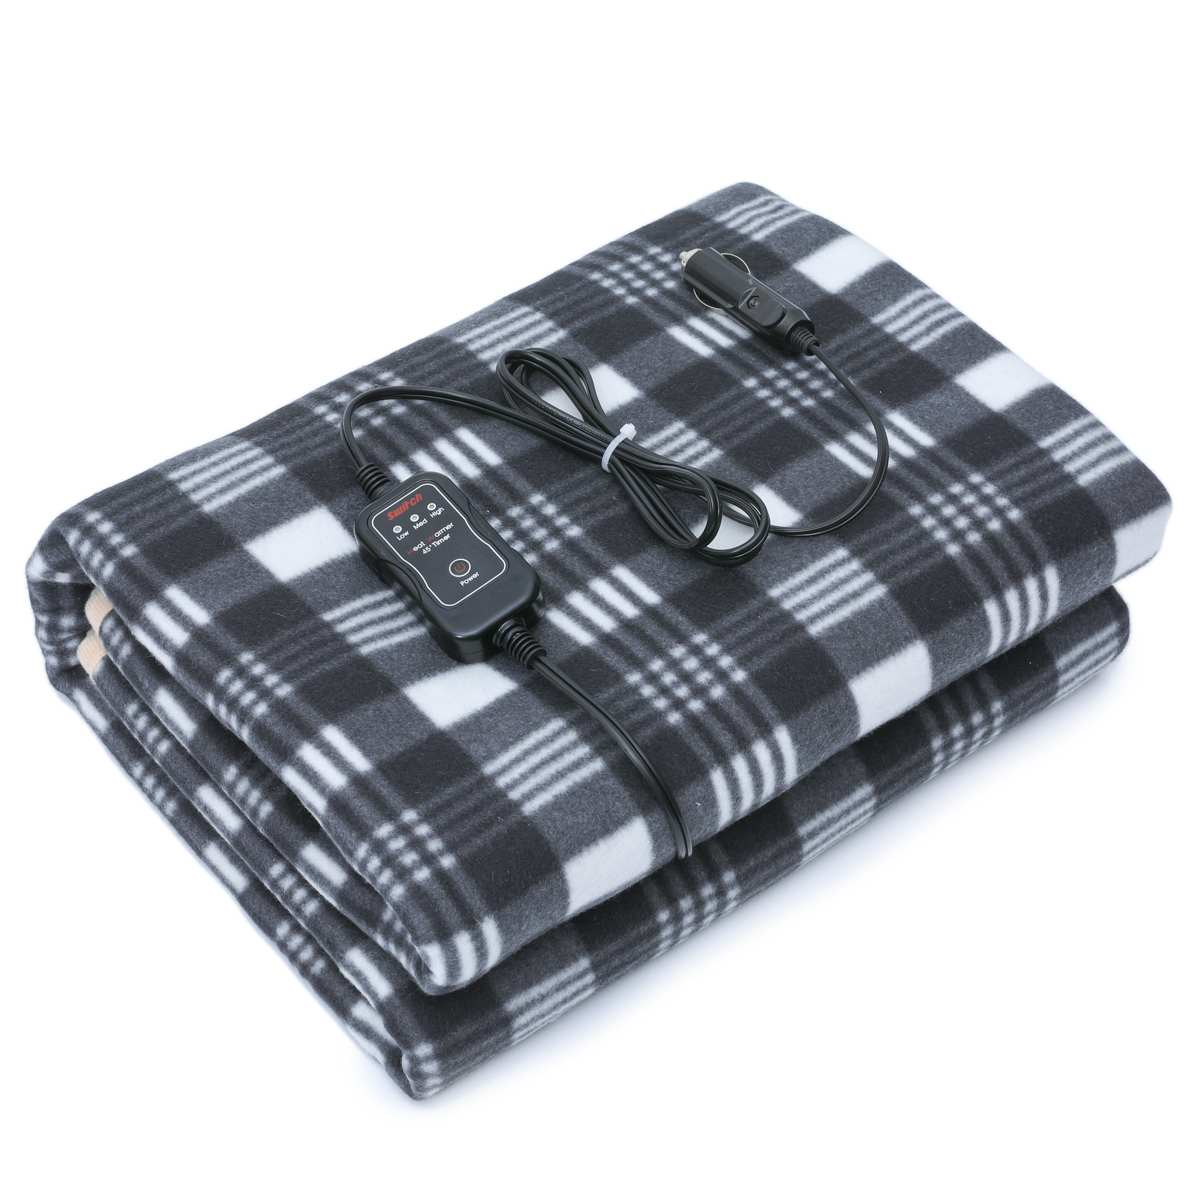 Car Heating Blanket Lattice Energy Saving Warm Autumn Winter Car Electric Blanket Safety Automotive Car Heating 60X43.5 Inch 12V